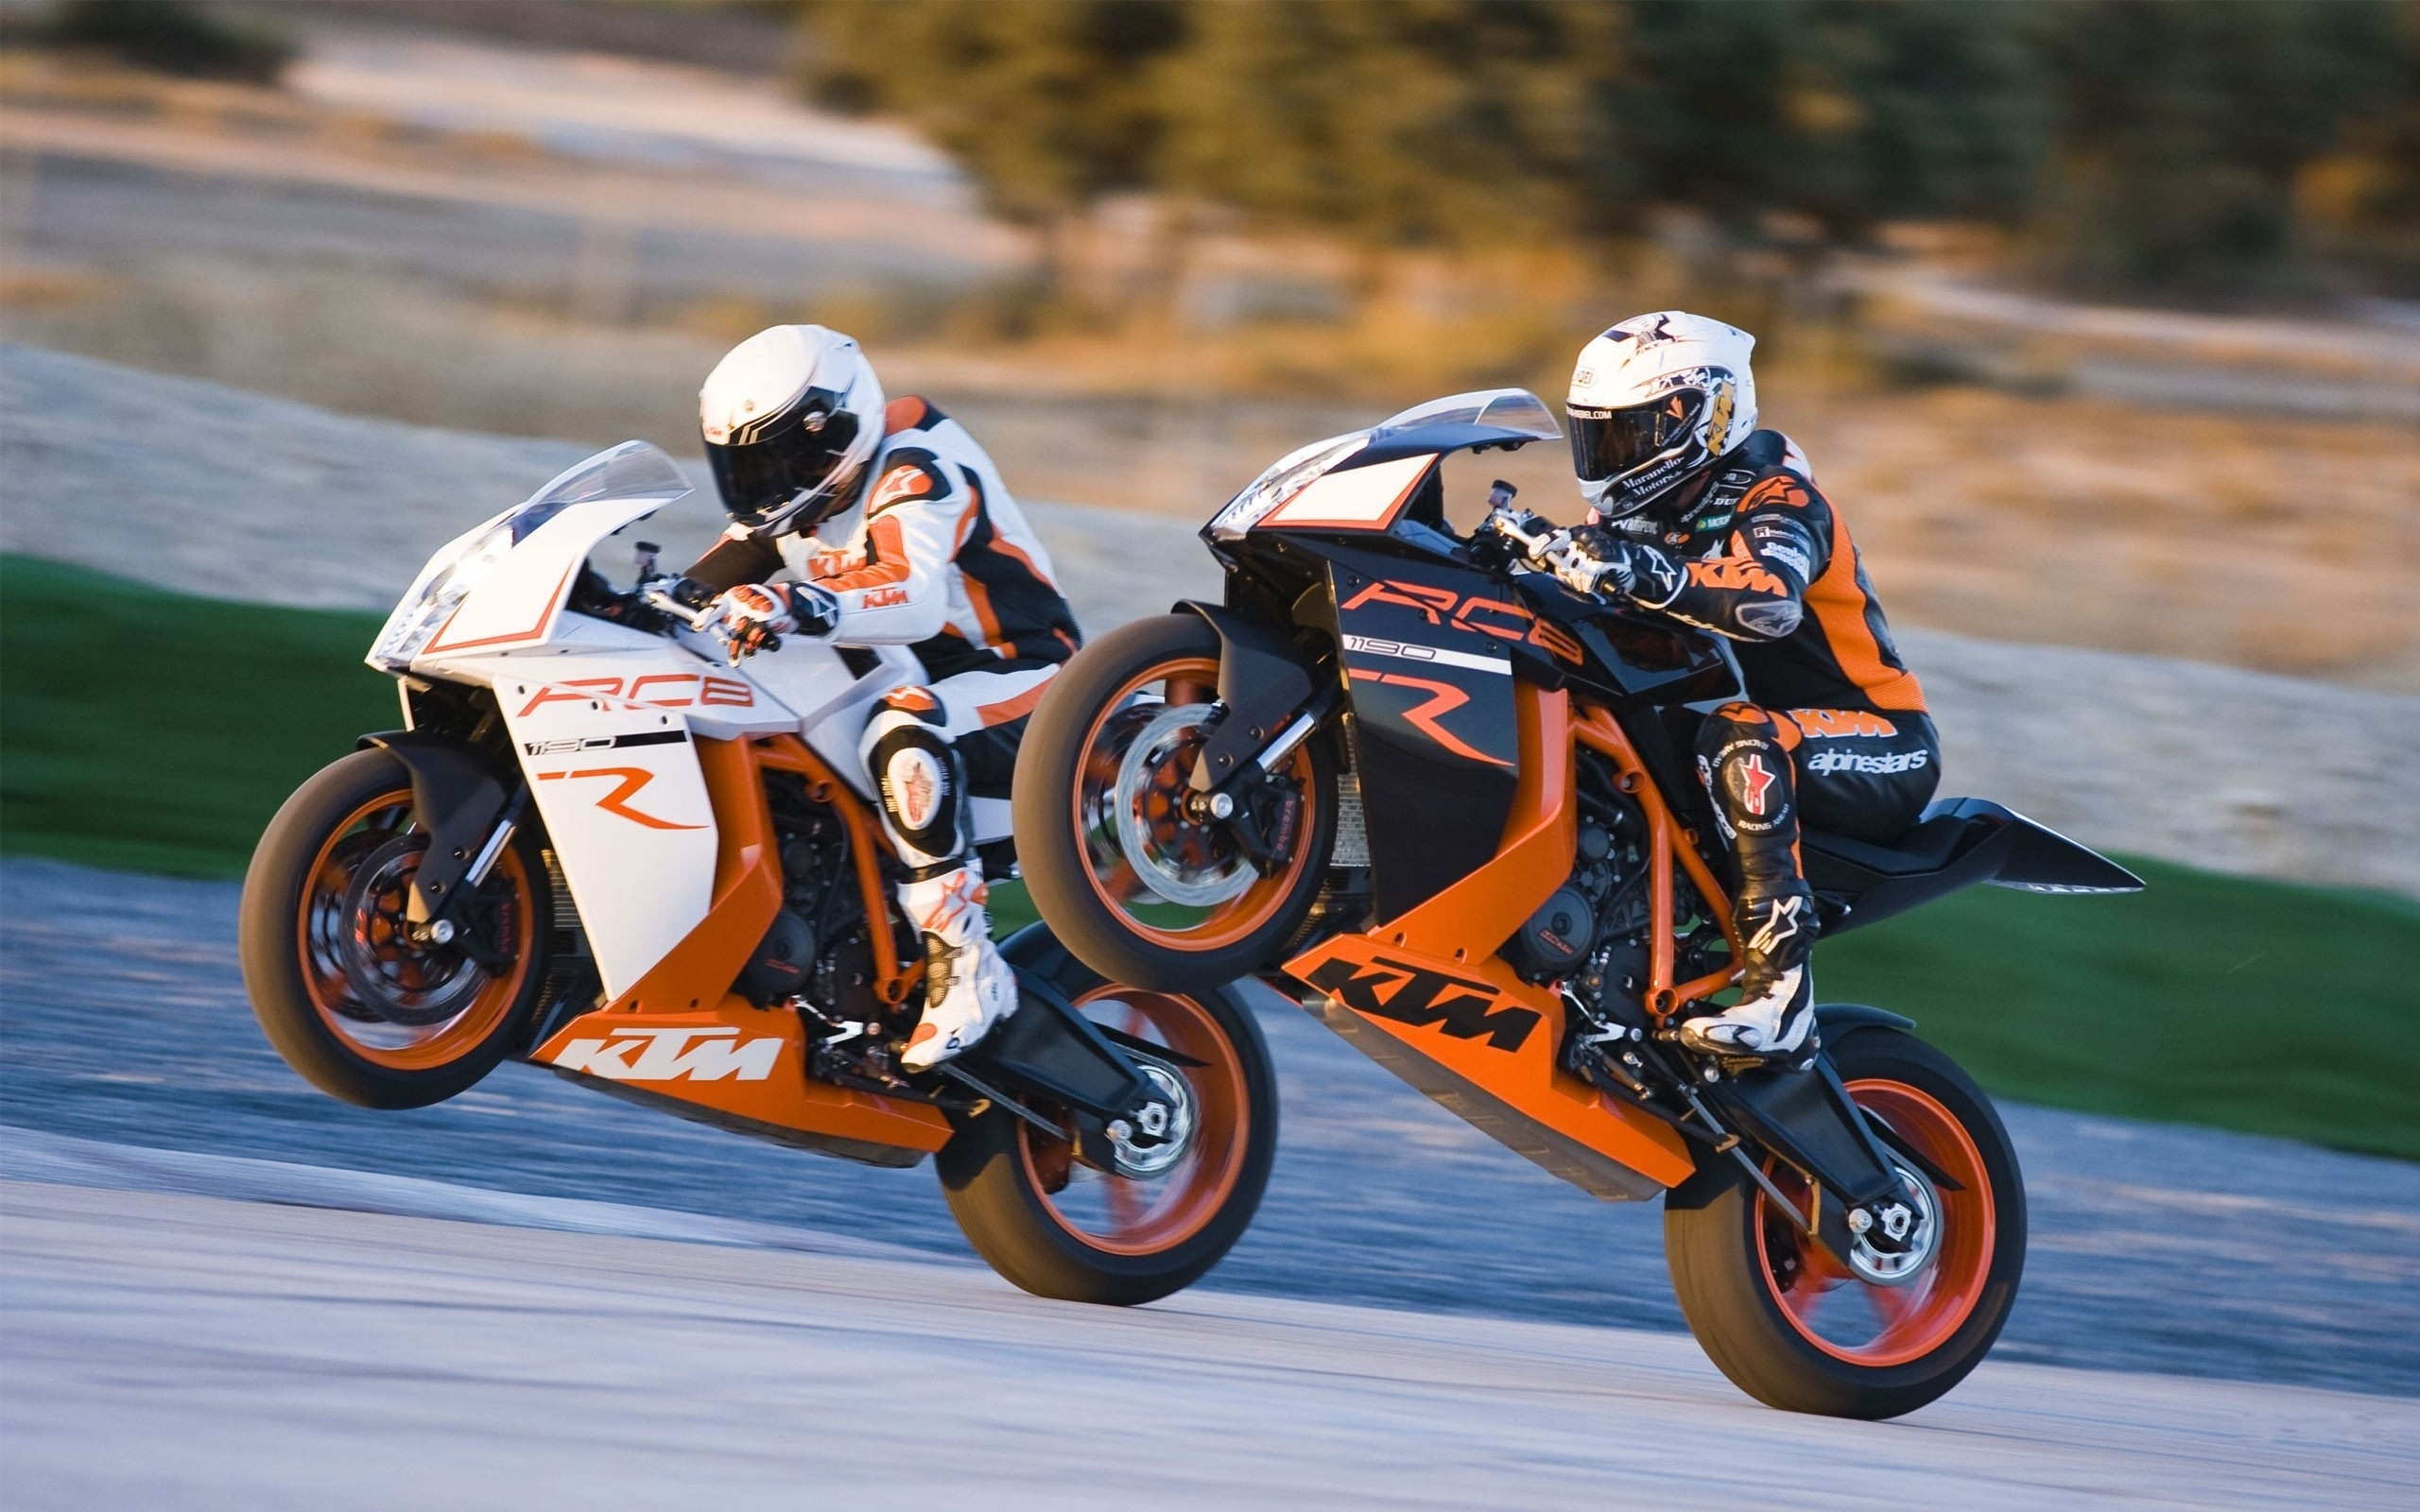 2560x1600 - KTM RC8 Wallpapers 4